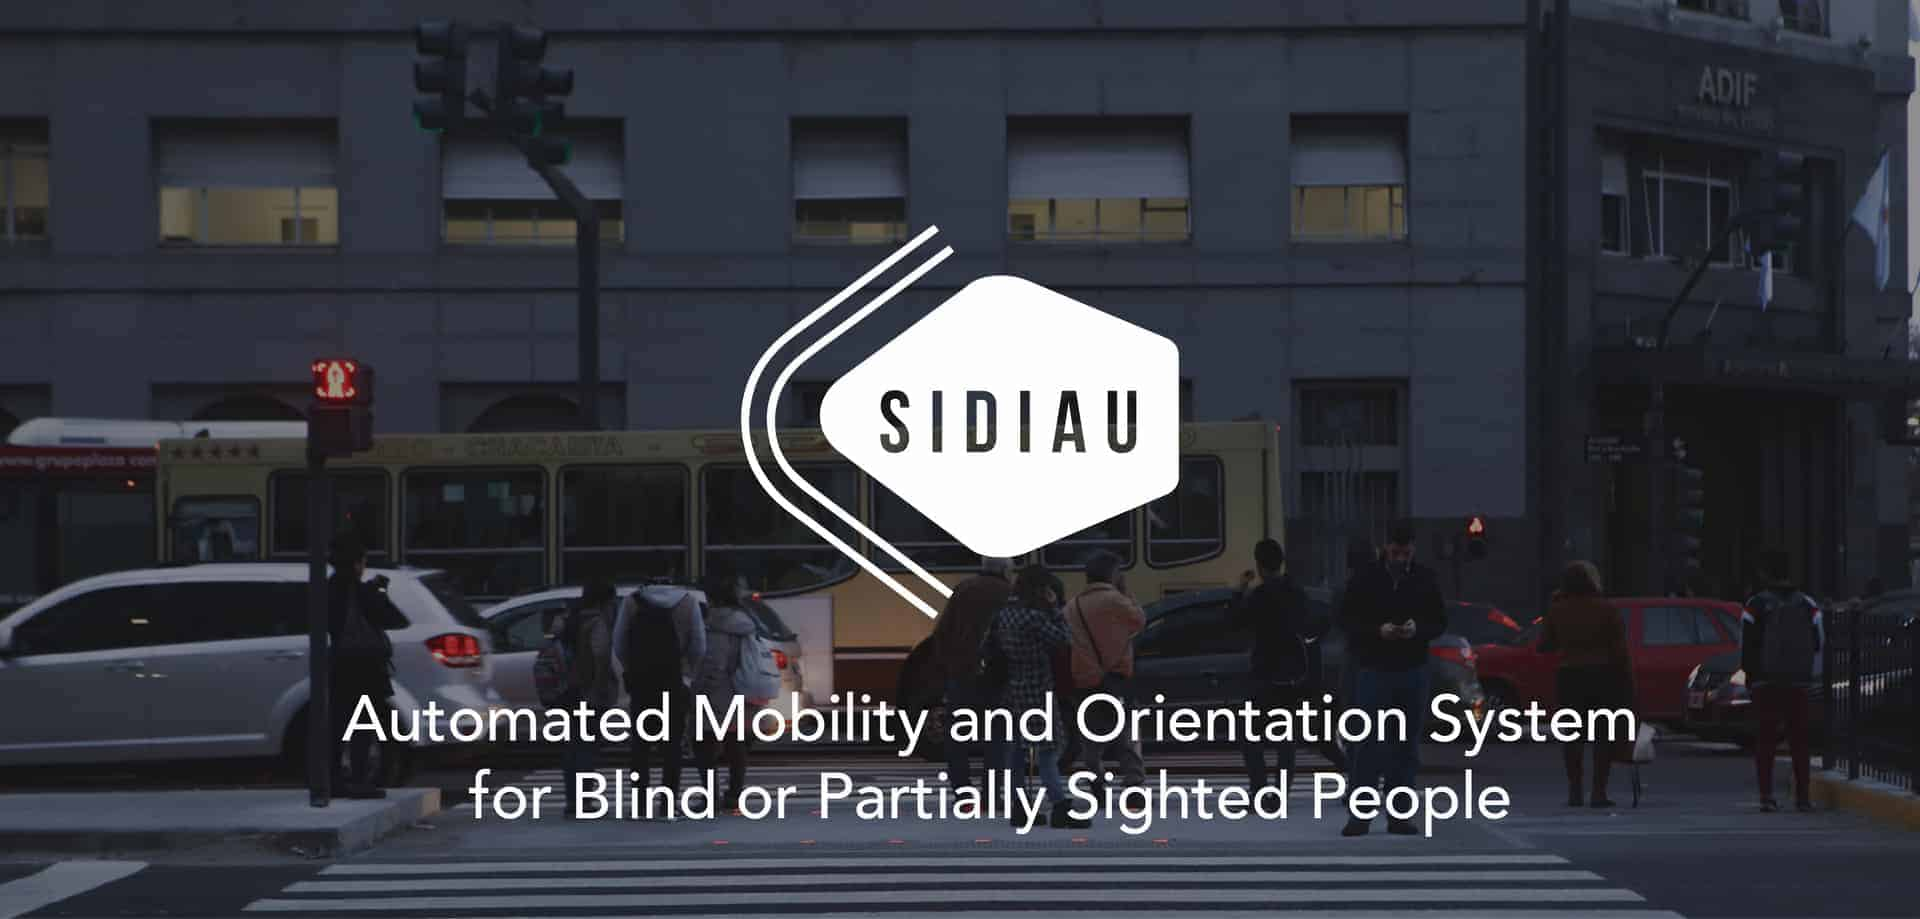 SIDIAU- Automated Mobility and Orientation System for Blind or Partially Sighted People